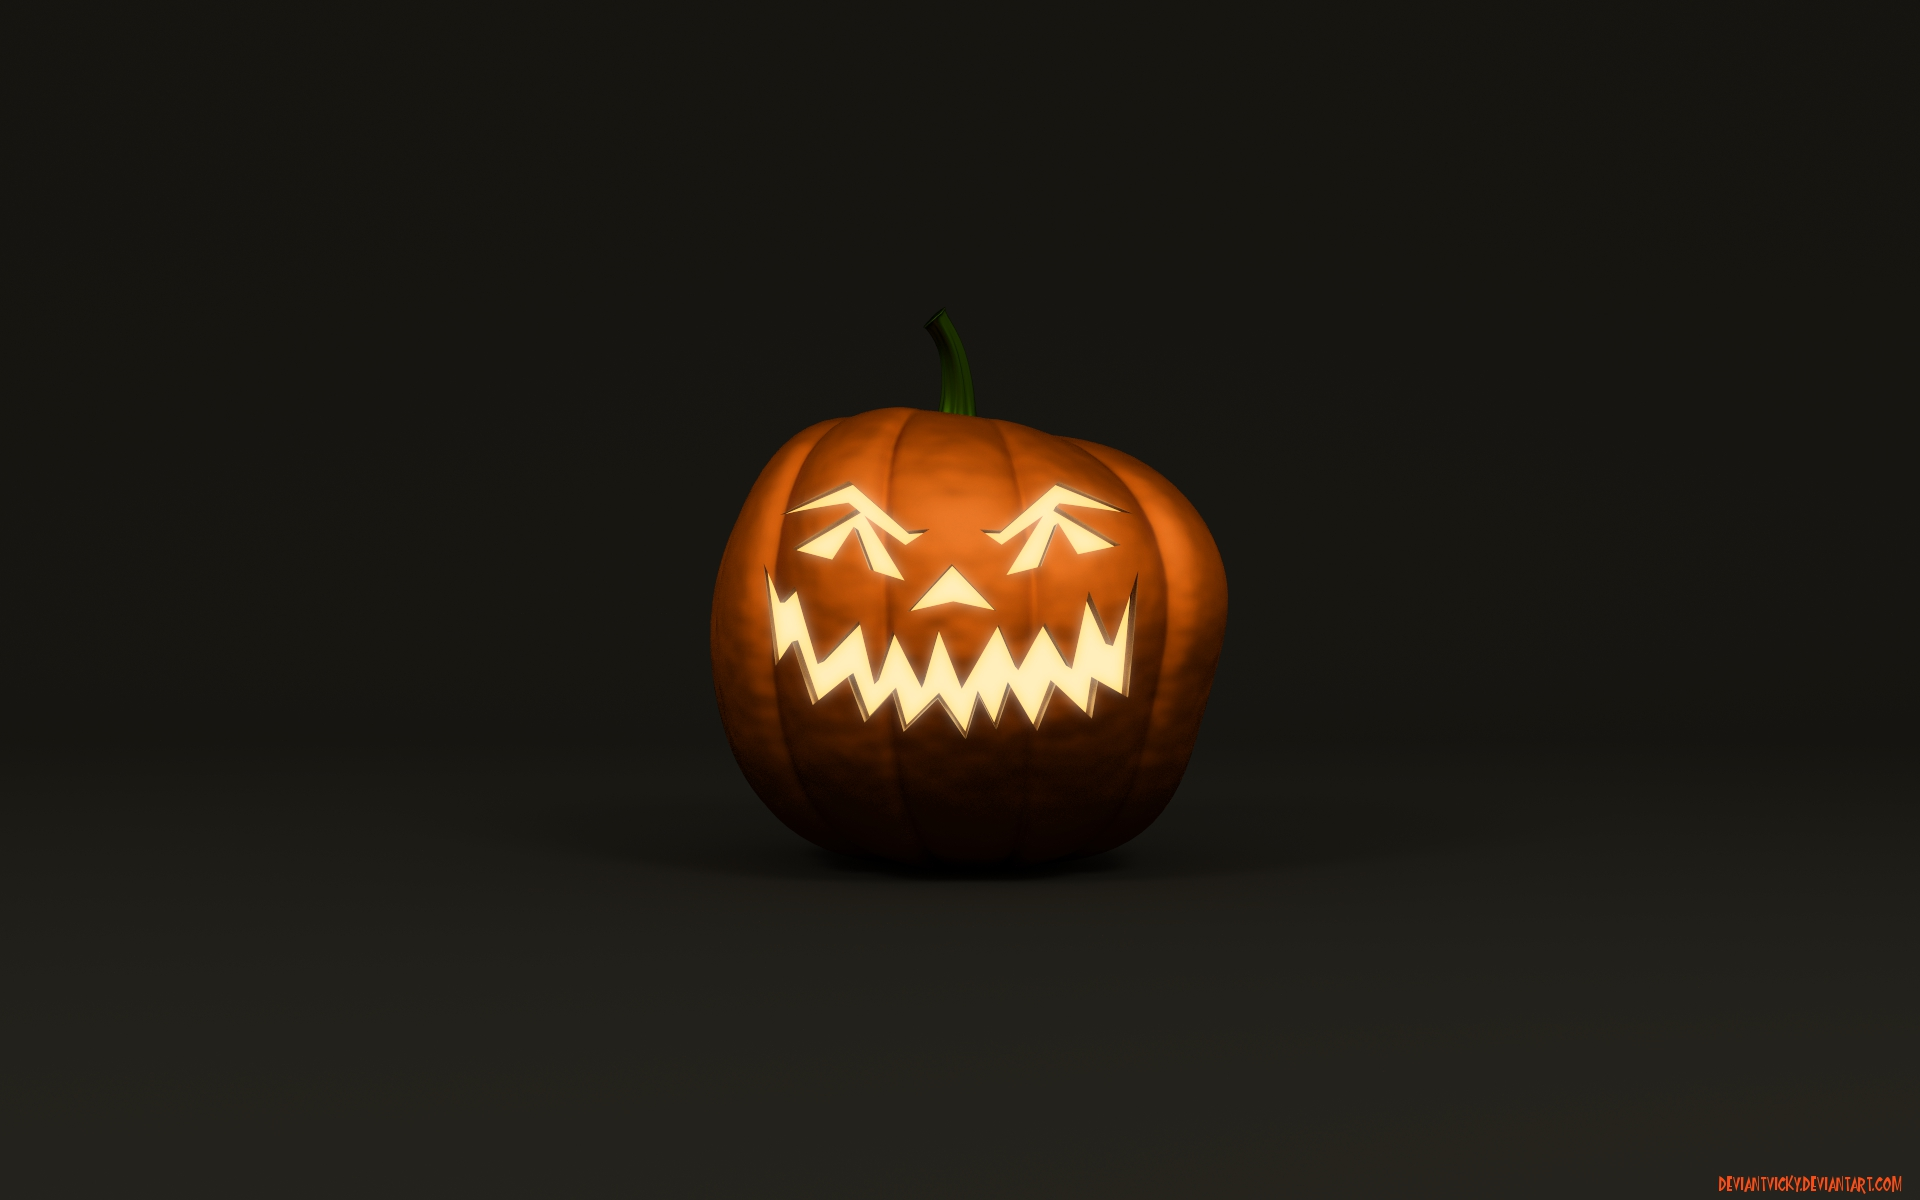 Scary 2012 Halloween Pumpkin HD Wallpaper